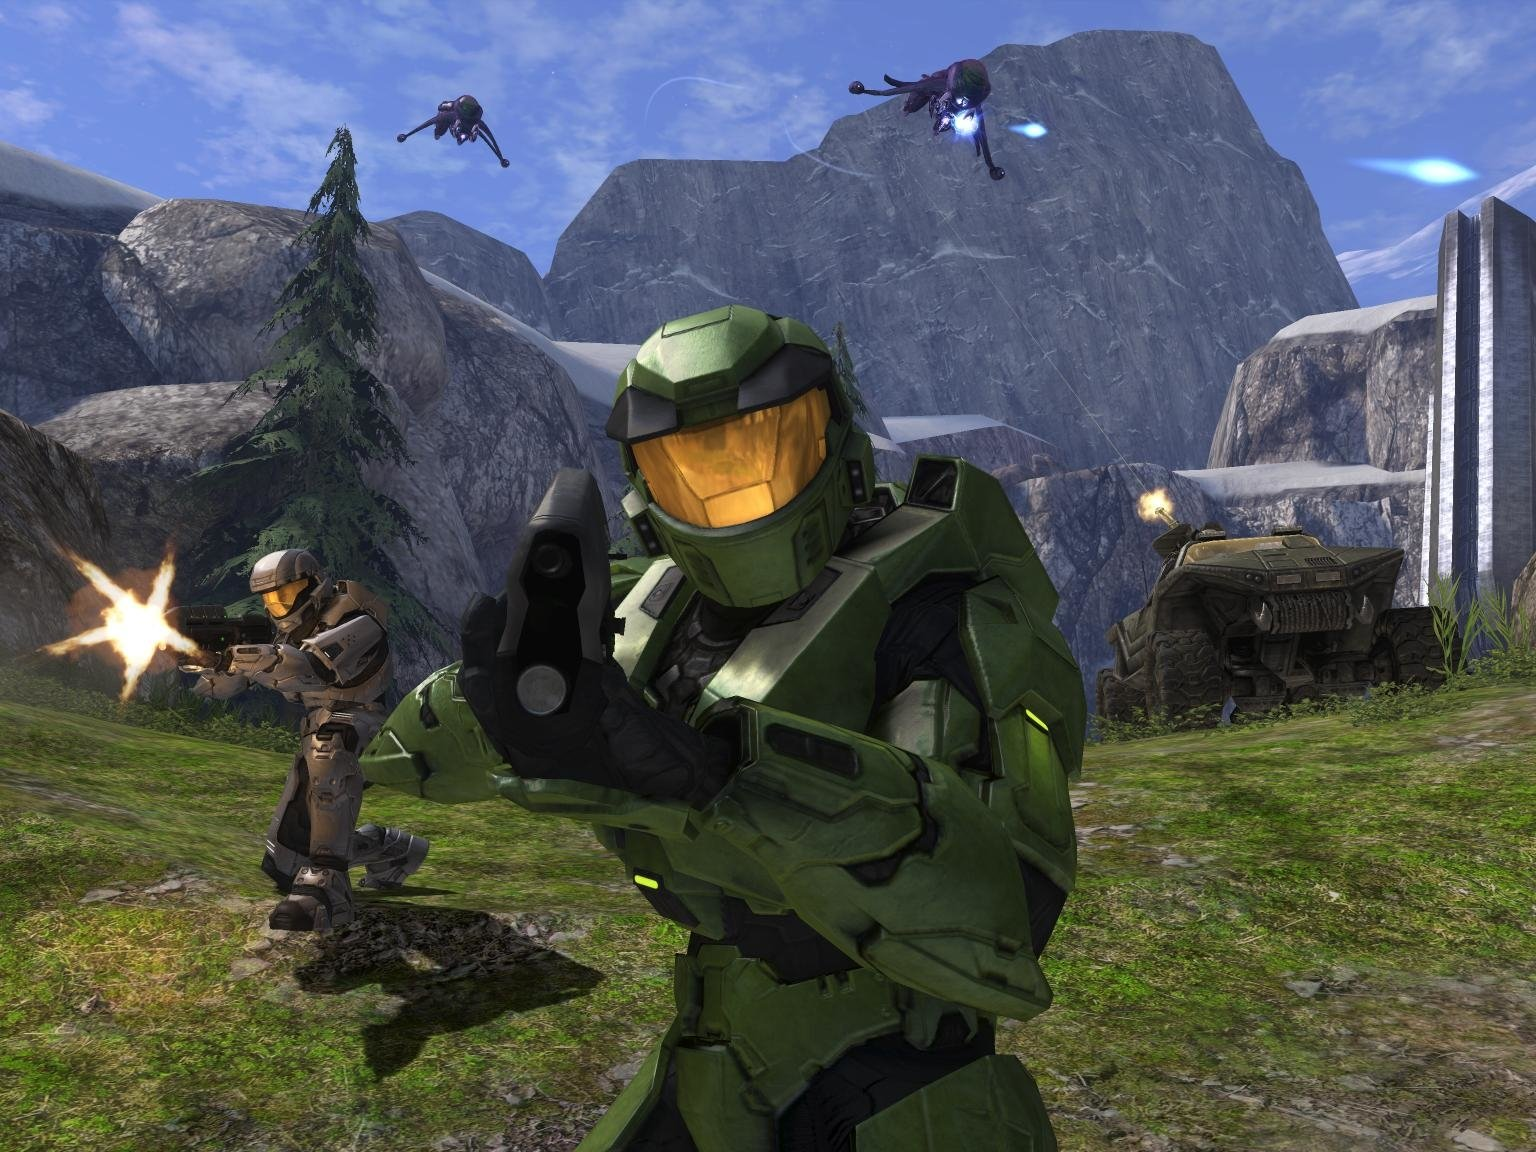 Halo Combat Evolved Wallpaper and Background Image 1536x1152 1536x1152